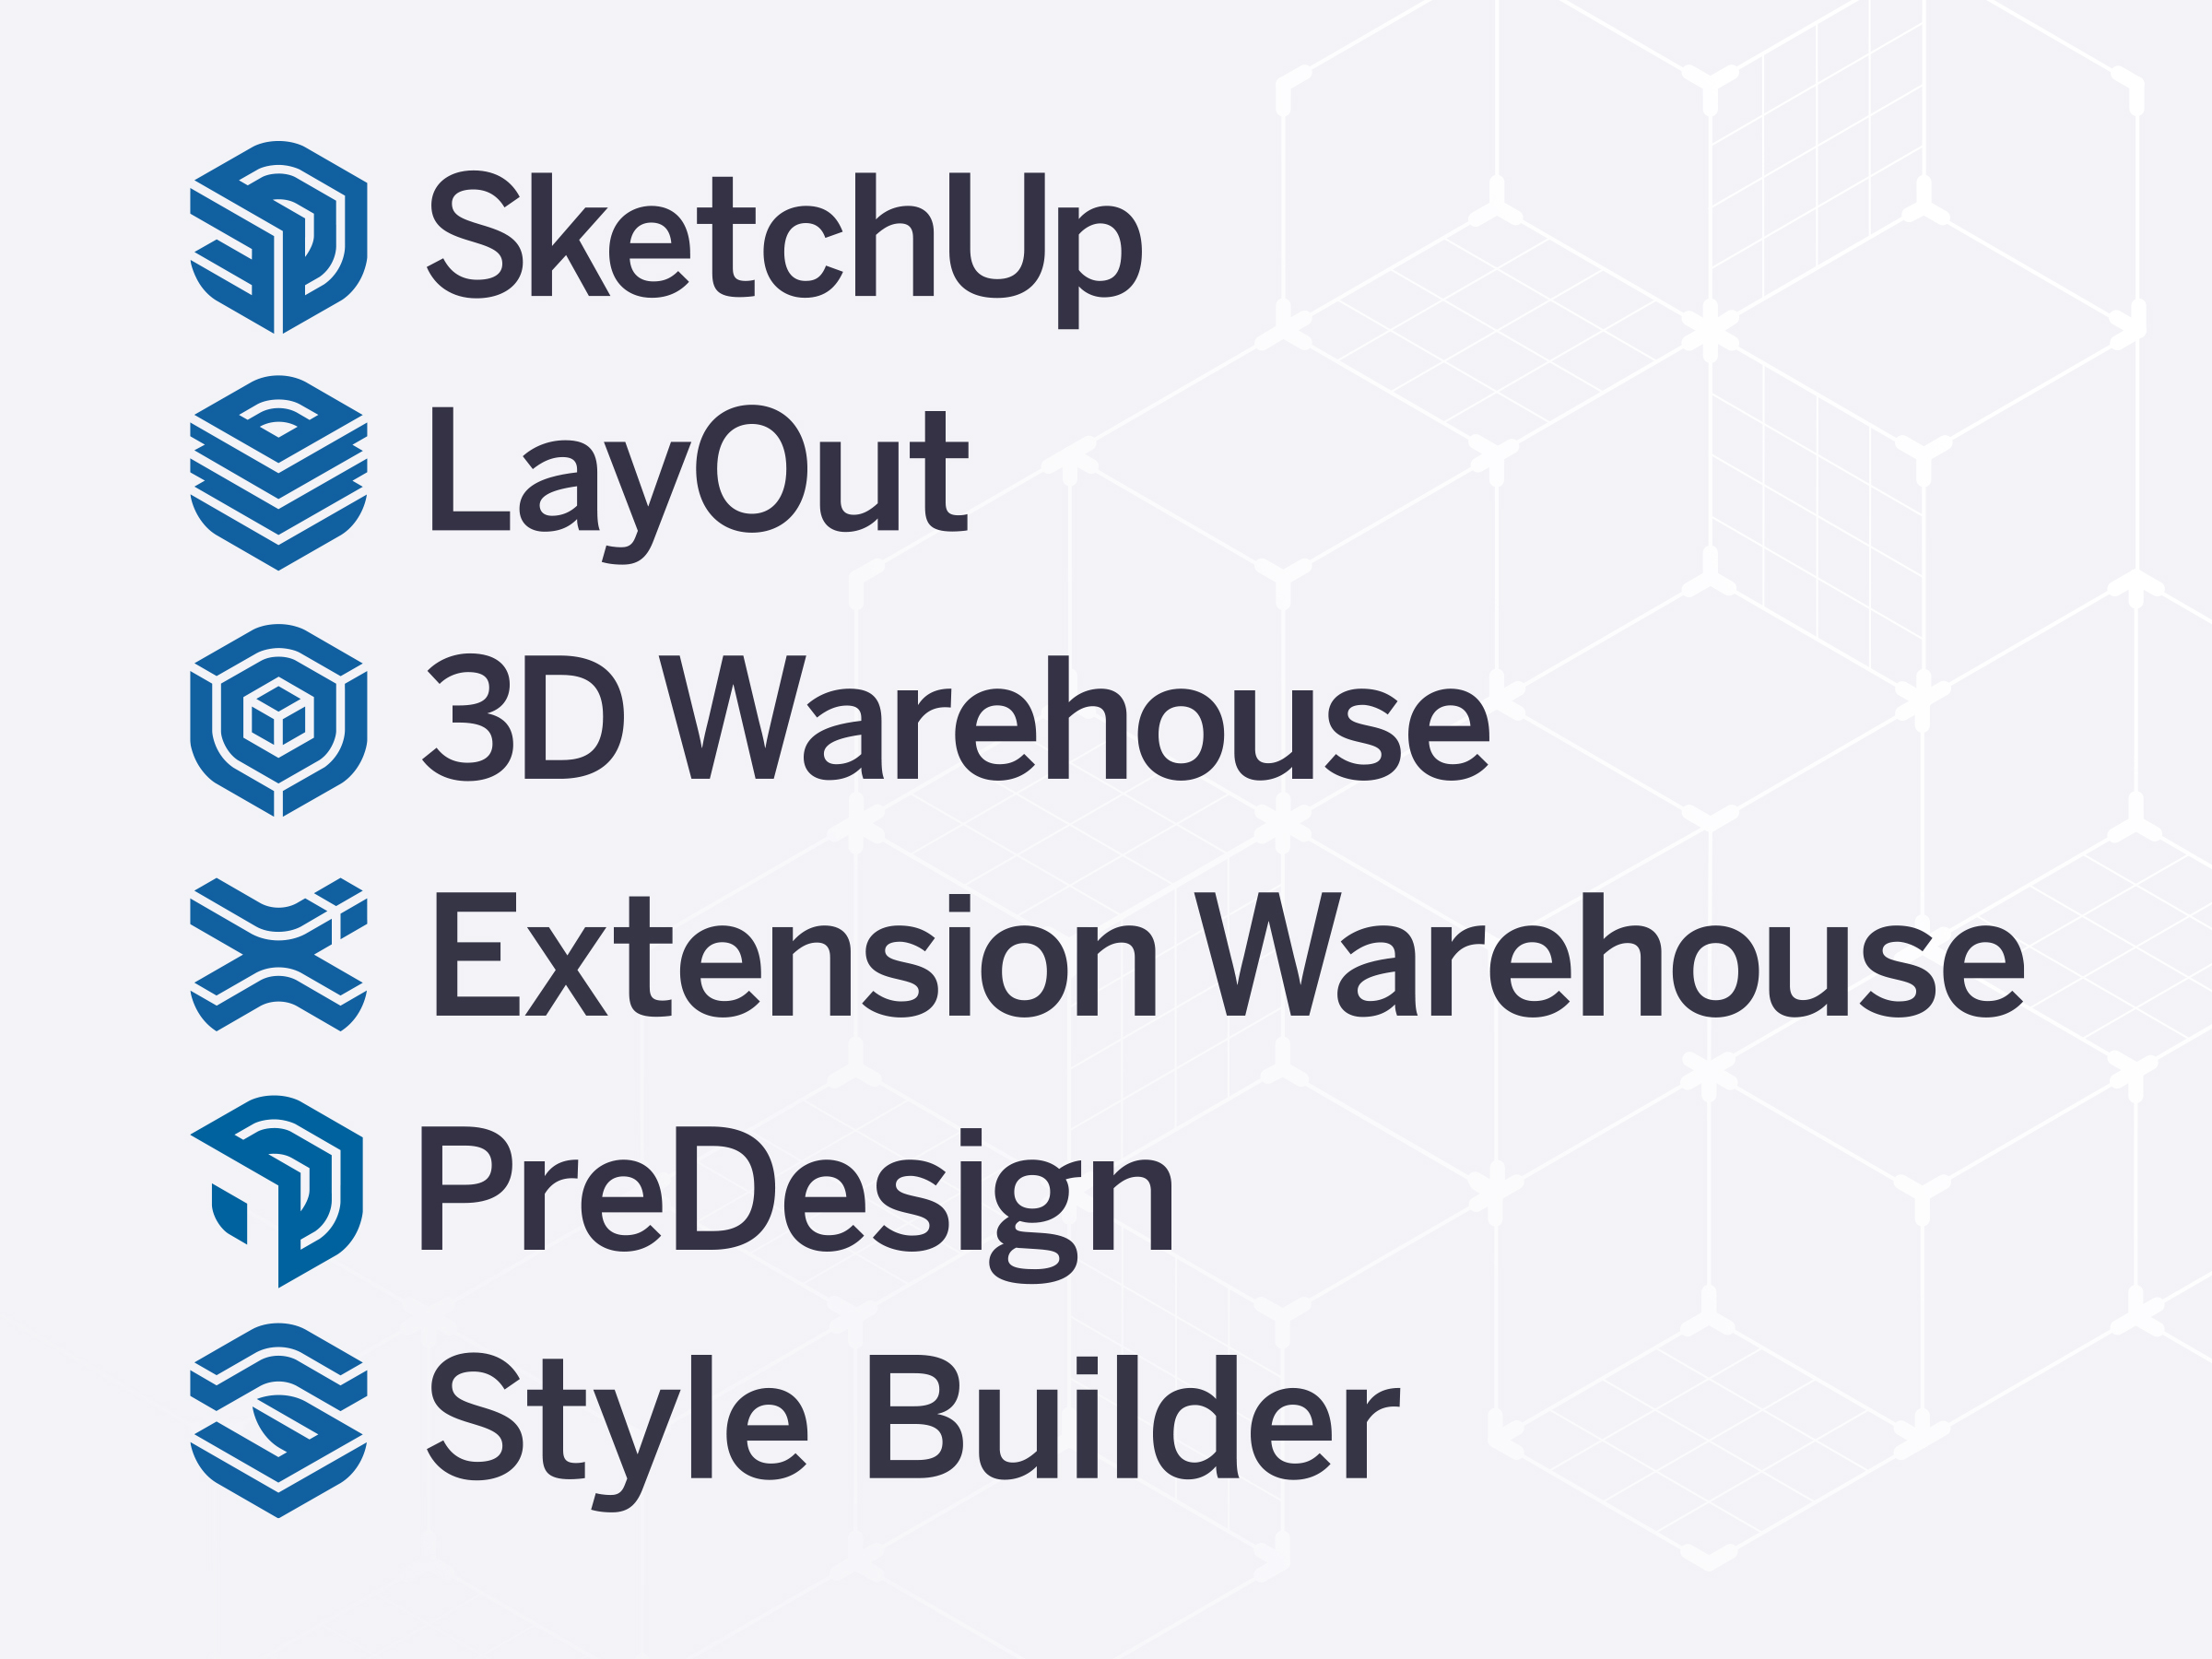 The suite of SketchUp Products Logos